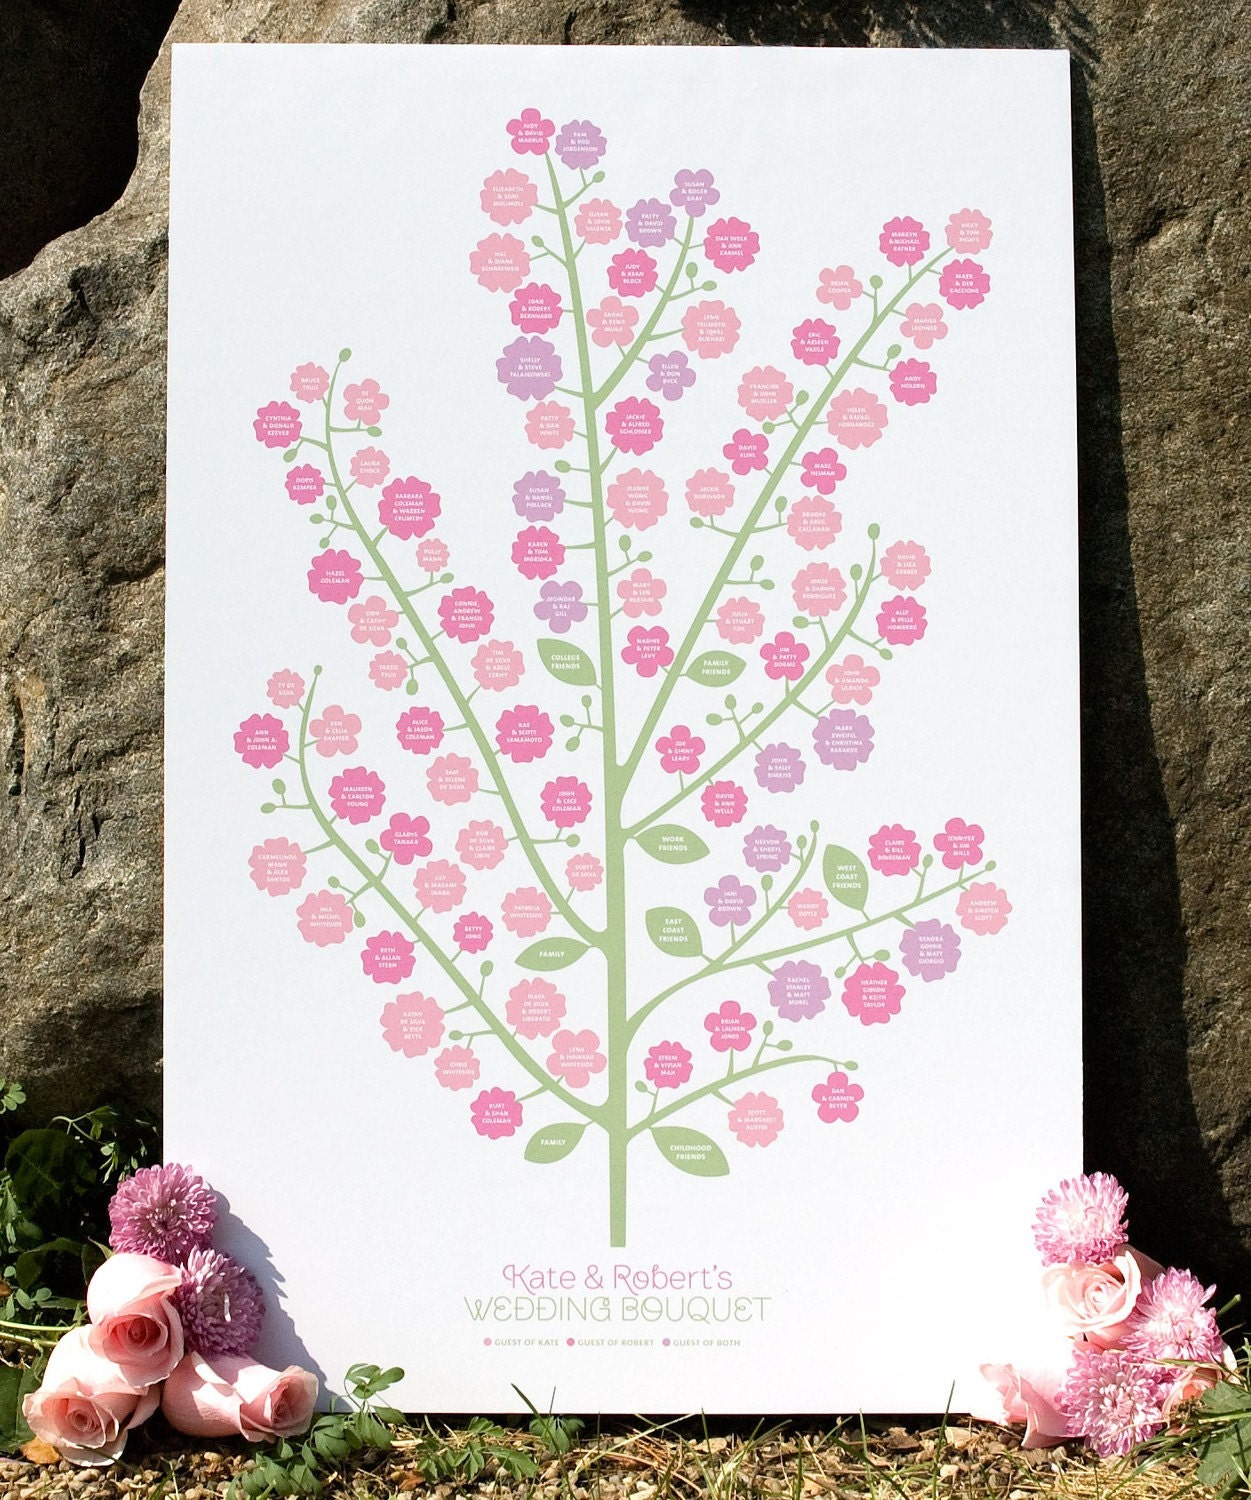 Wedding Tree Genealogy Chart By Melangeriedesign On Etsy: Wedding Bouquet Genealogy Chart